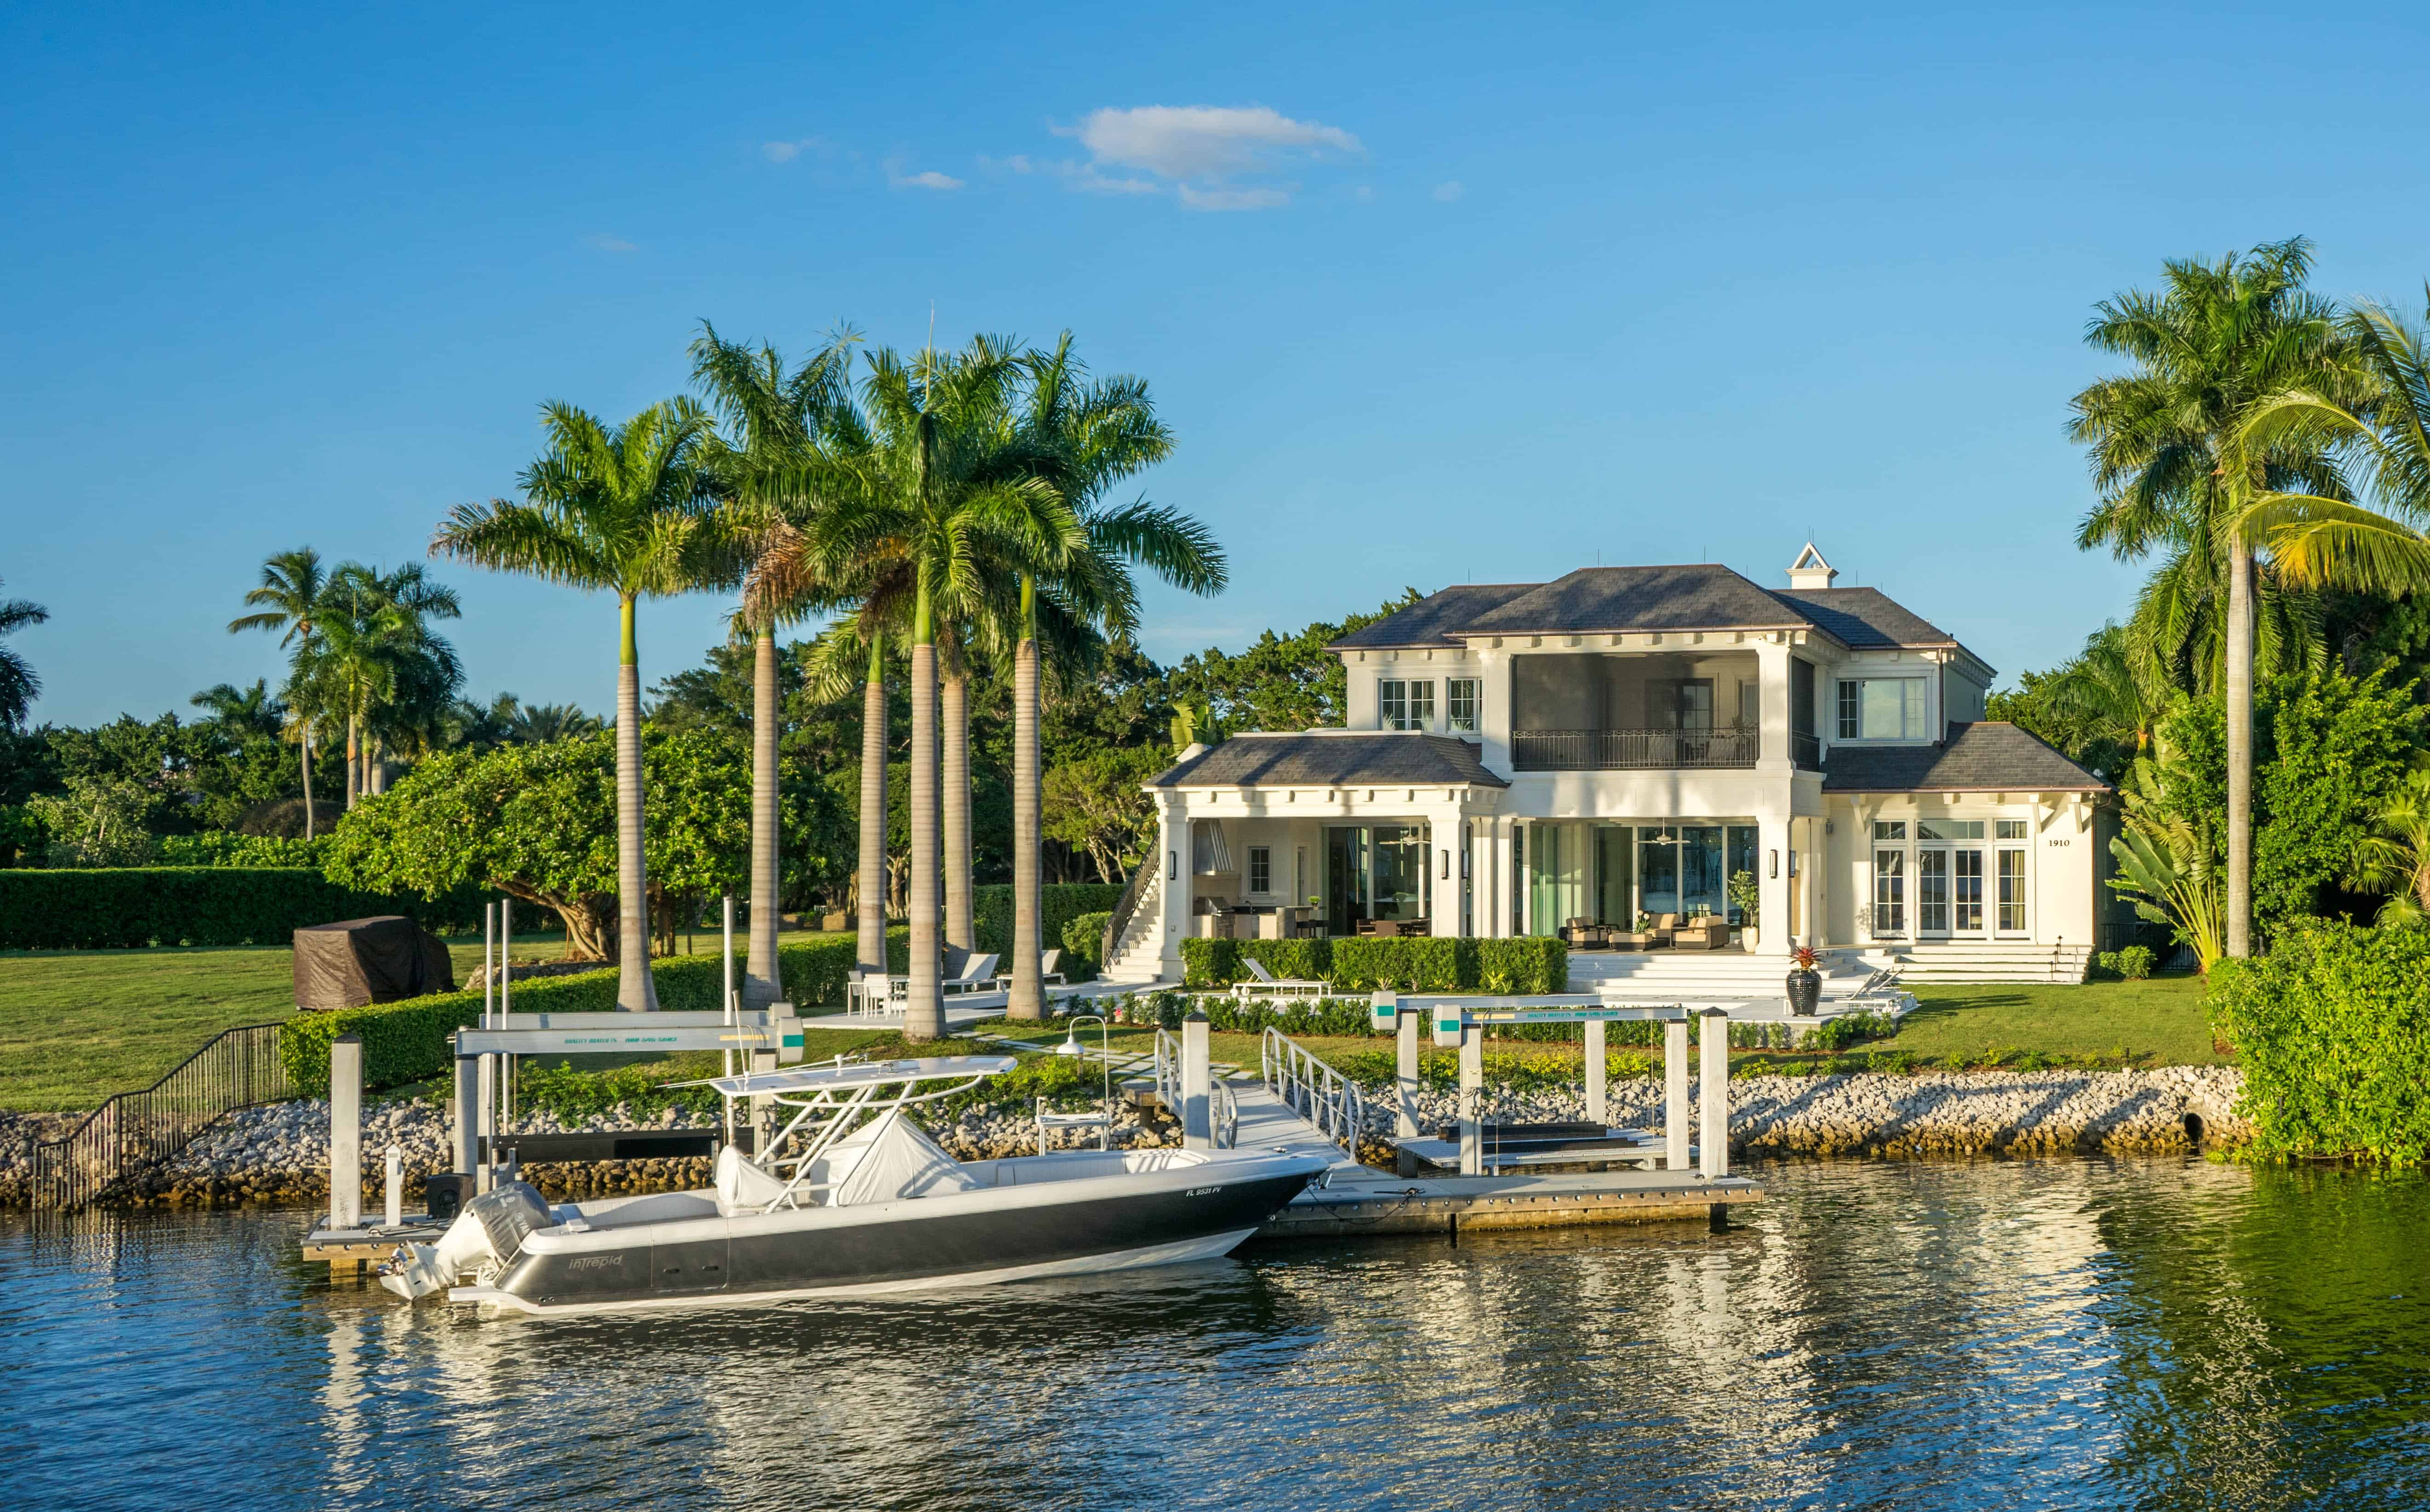 Title Services of Collier County is a privately held, title and escrow  company servicing all of southern Florida since 2002.